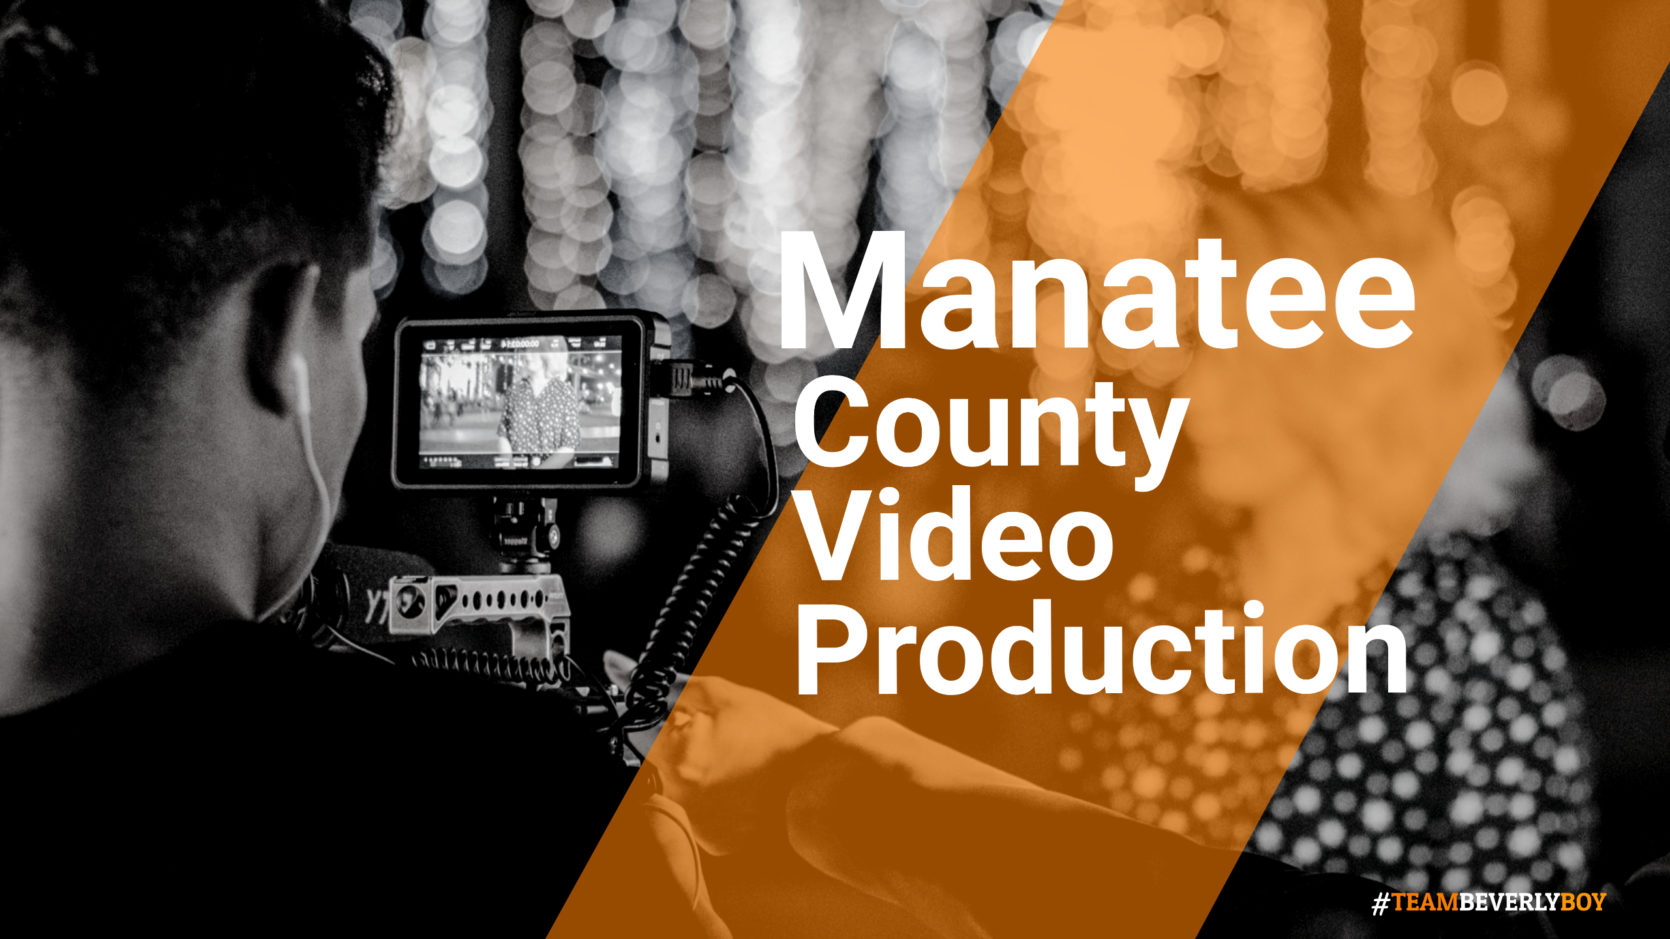 Manatee County Video Production